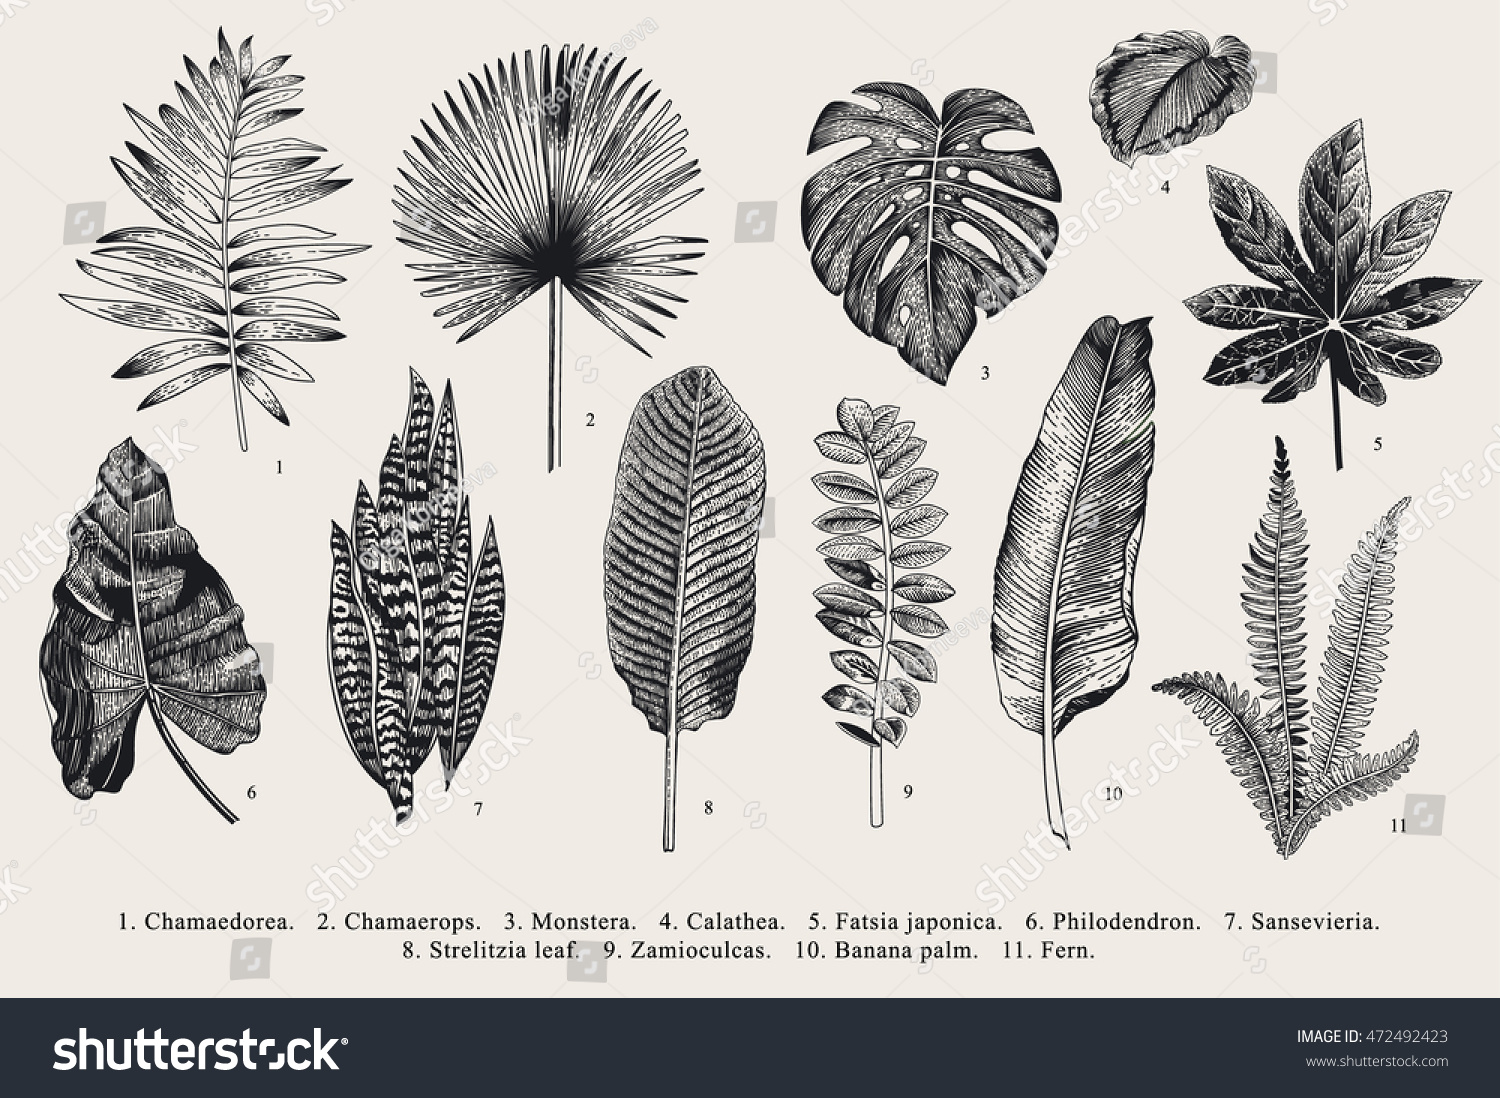 Set Leaf Exotics Vintage Vector Botanical Stock Vector ...